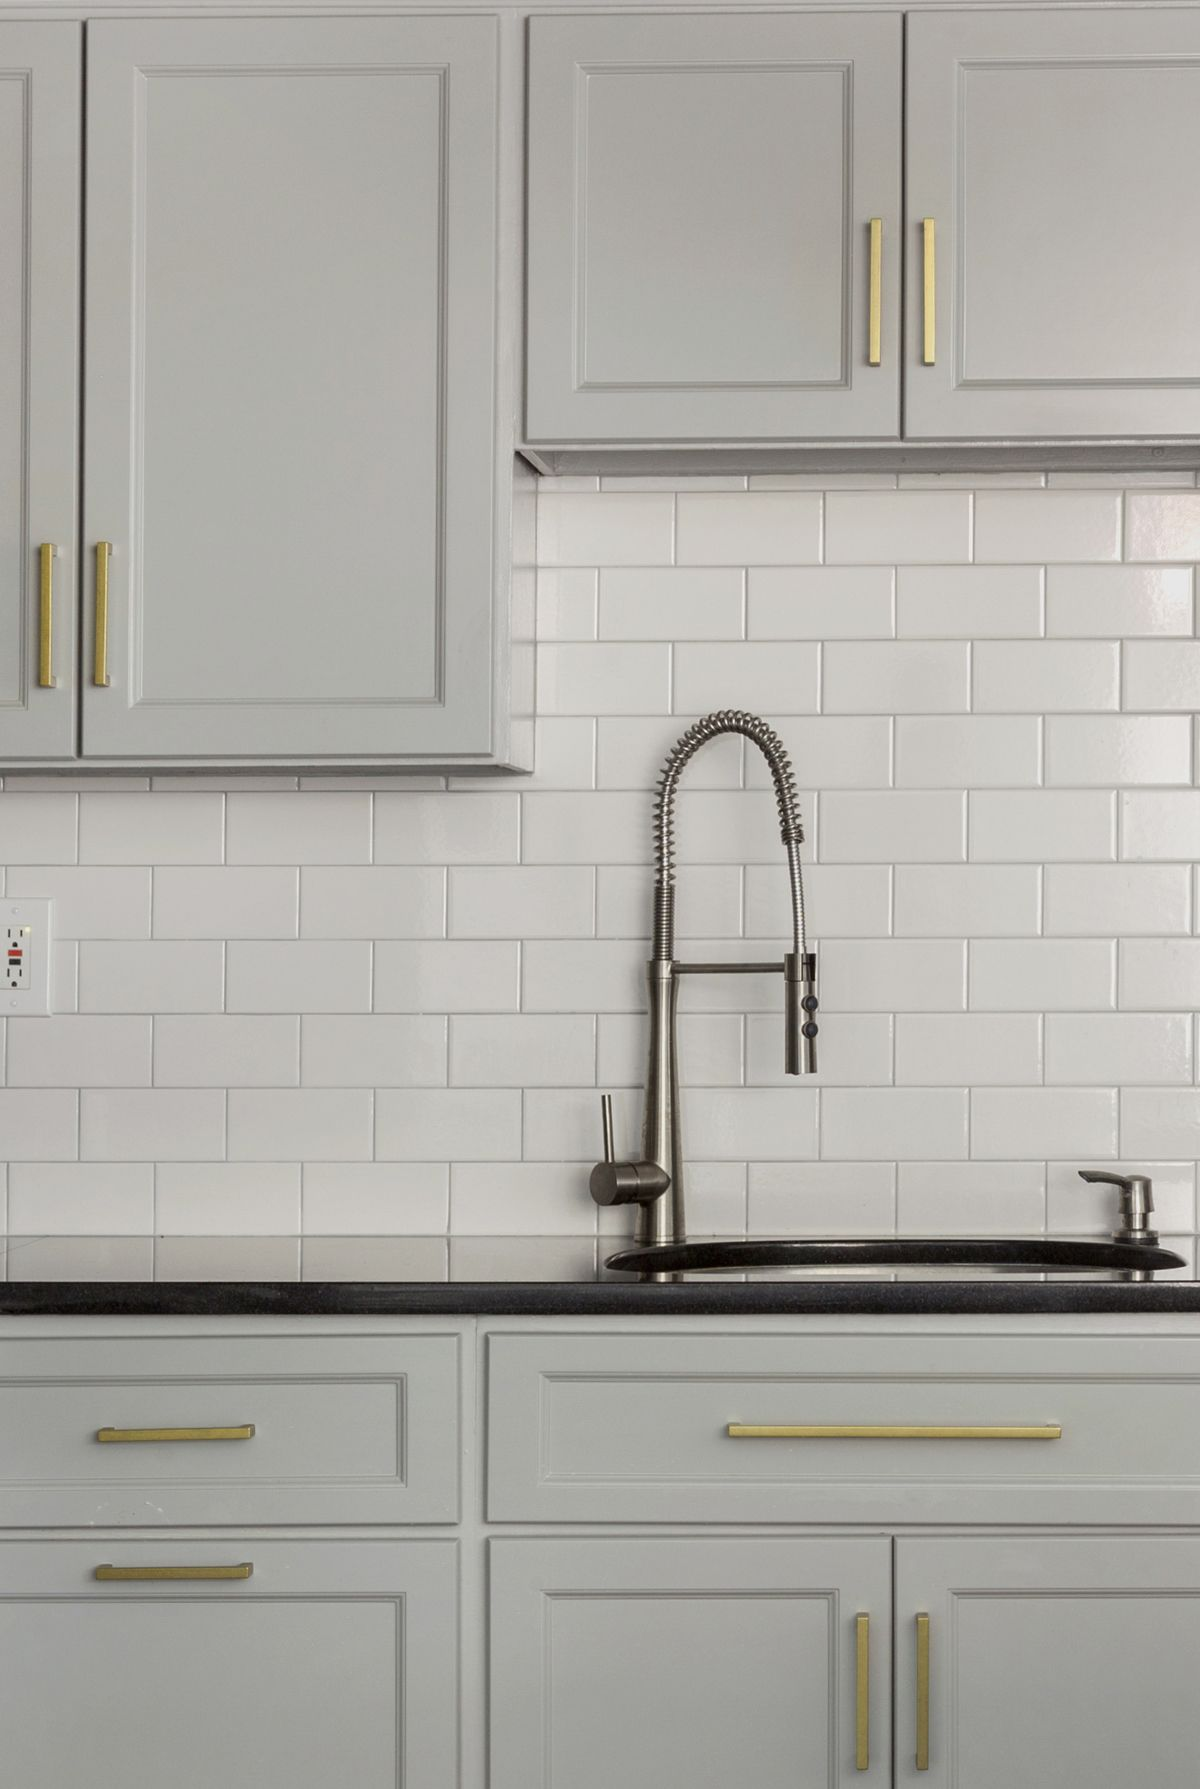 Br Modern Cabinet Hardware Gray Cabinets Black Countertop White Subway Tile